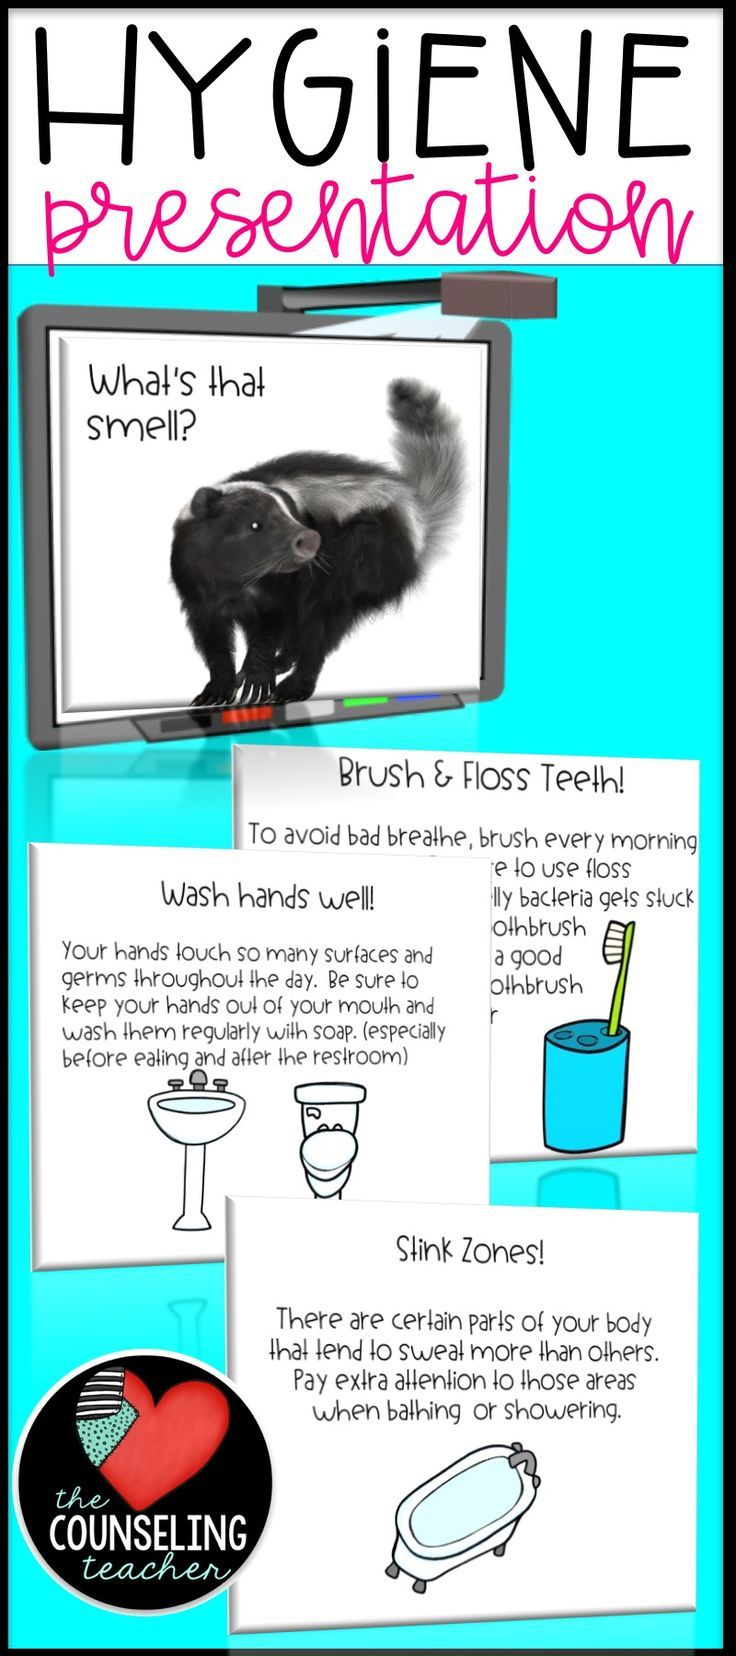 Hygiene reminders are a necessary part of the education process. Students need reminders of these useful hygiene tips to stay fresh and clean. This presentation can be used as a small group lesson or as a whole group presentation.